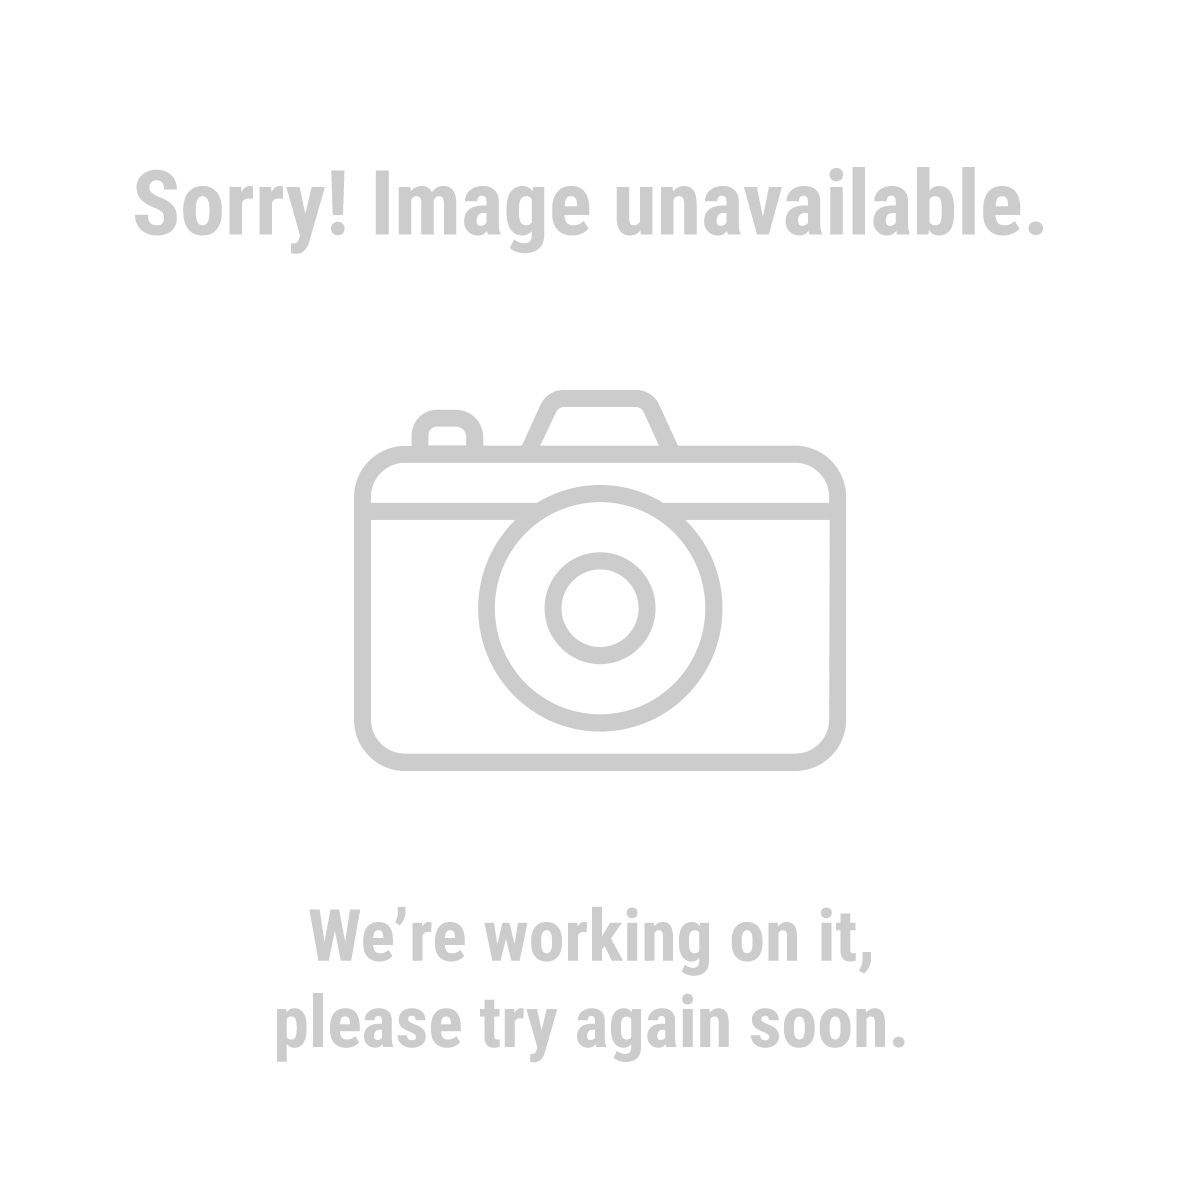 Windsor Design 97545 3 Piece Mini Brass Plane Set